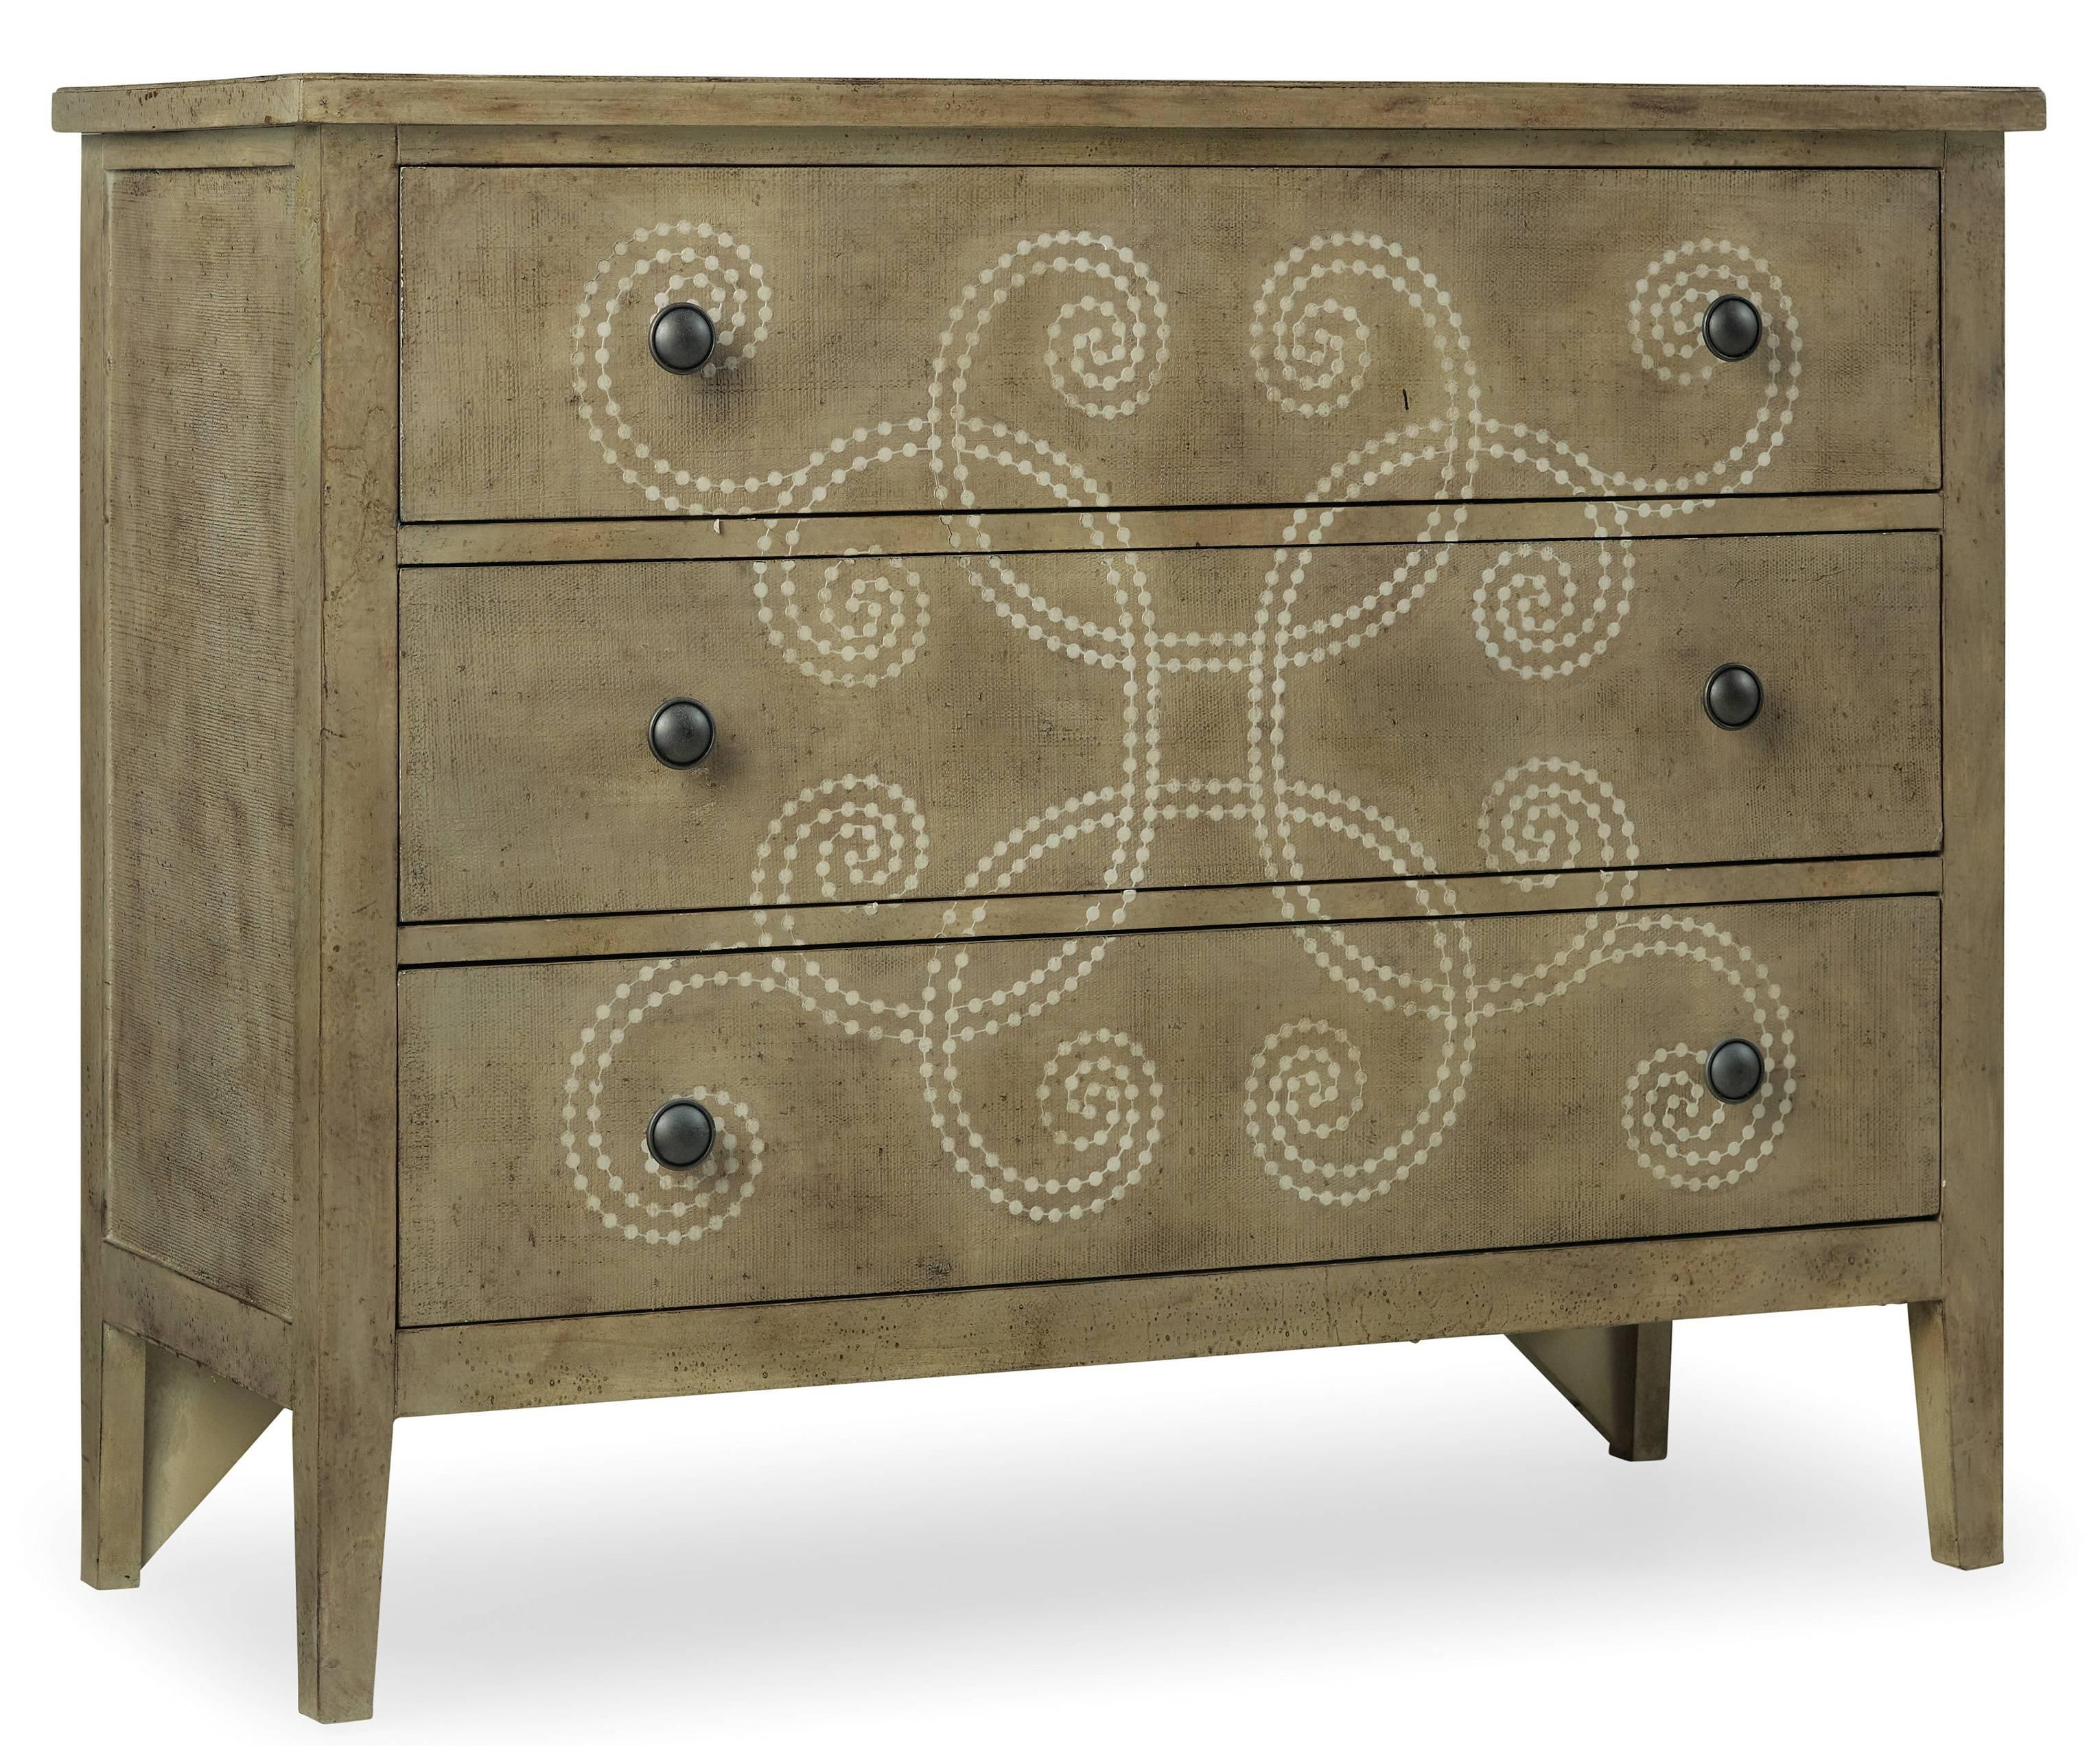 accent pieces  product categories  h contract furniture - curlacue chest